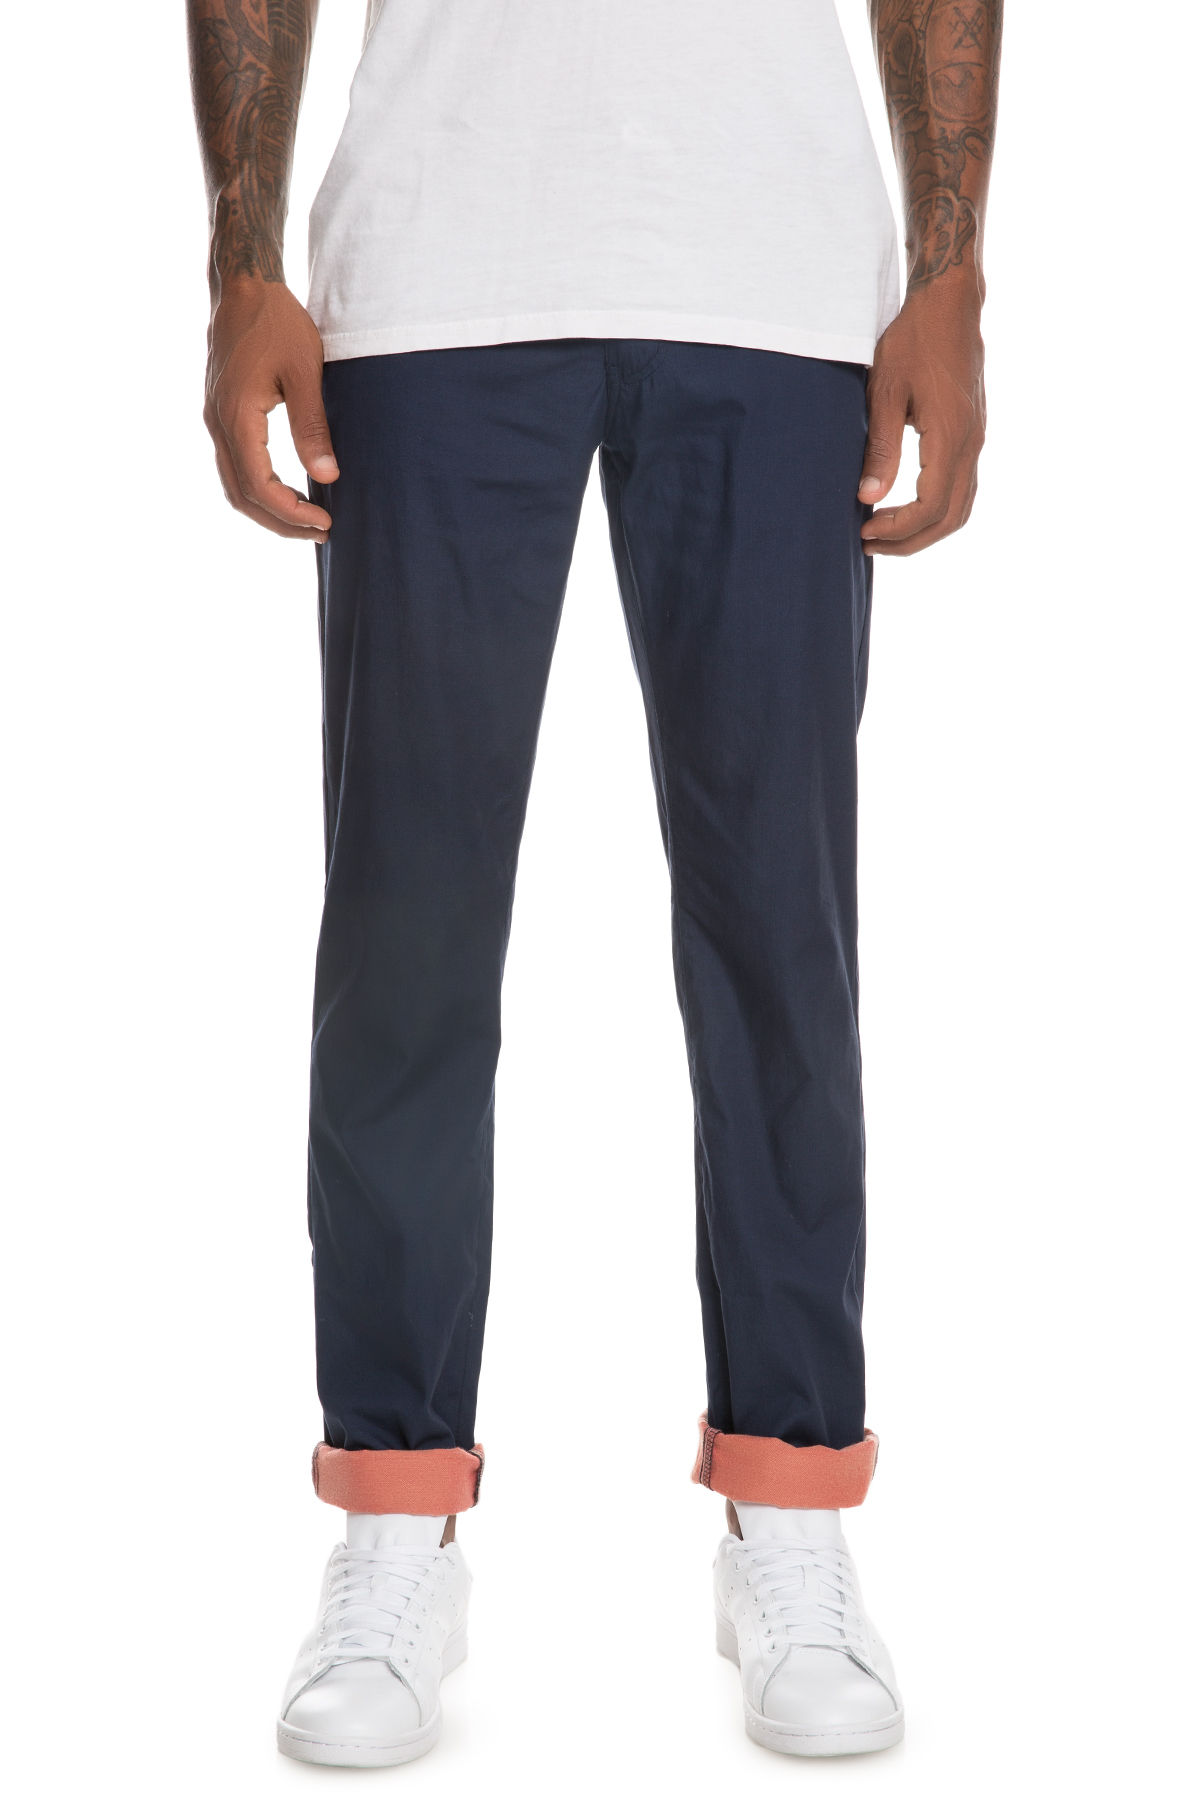 Image of The Something Upholding Pants in Navy